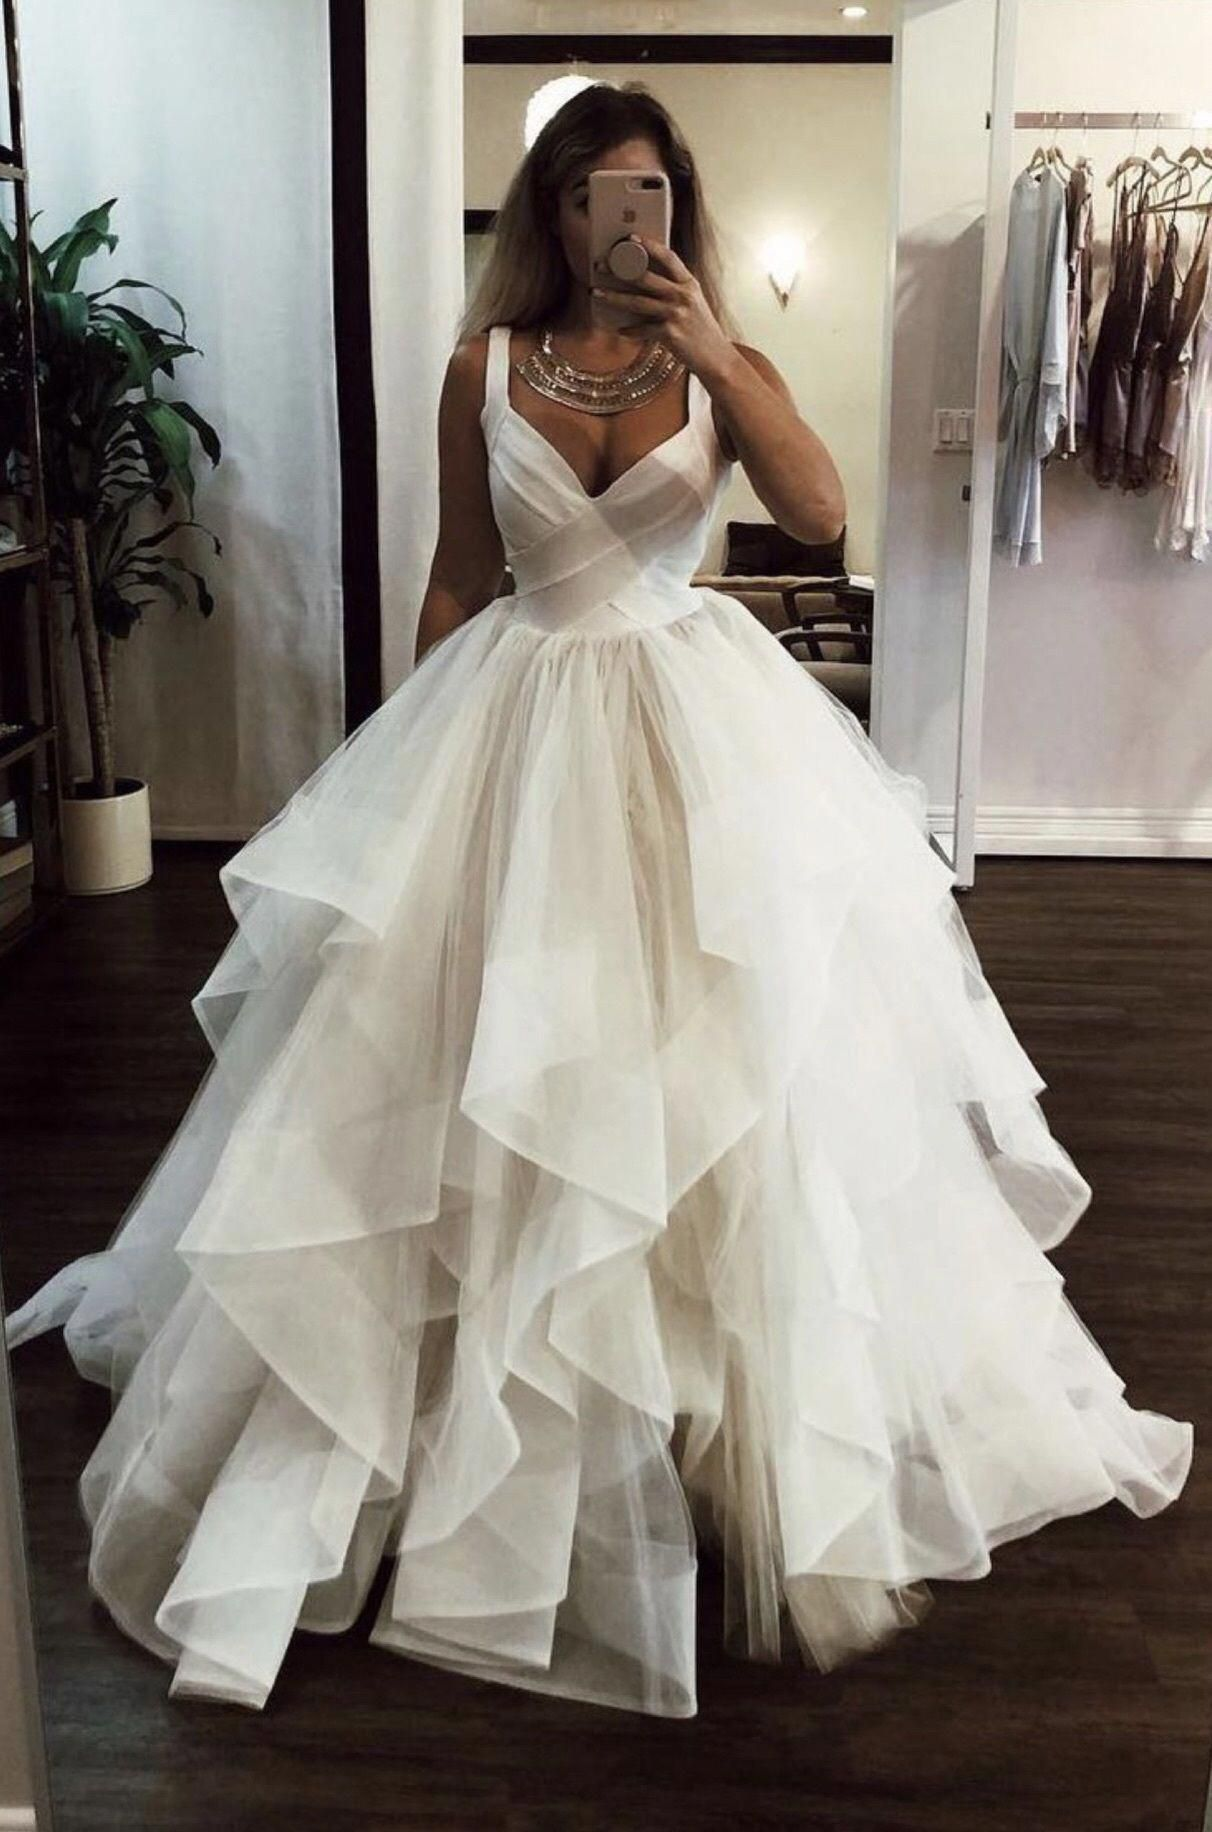 White Floor Length Wedding Dresses, Elegant White Prom Gowns, Evening Formal Dre…